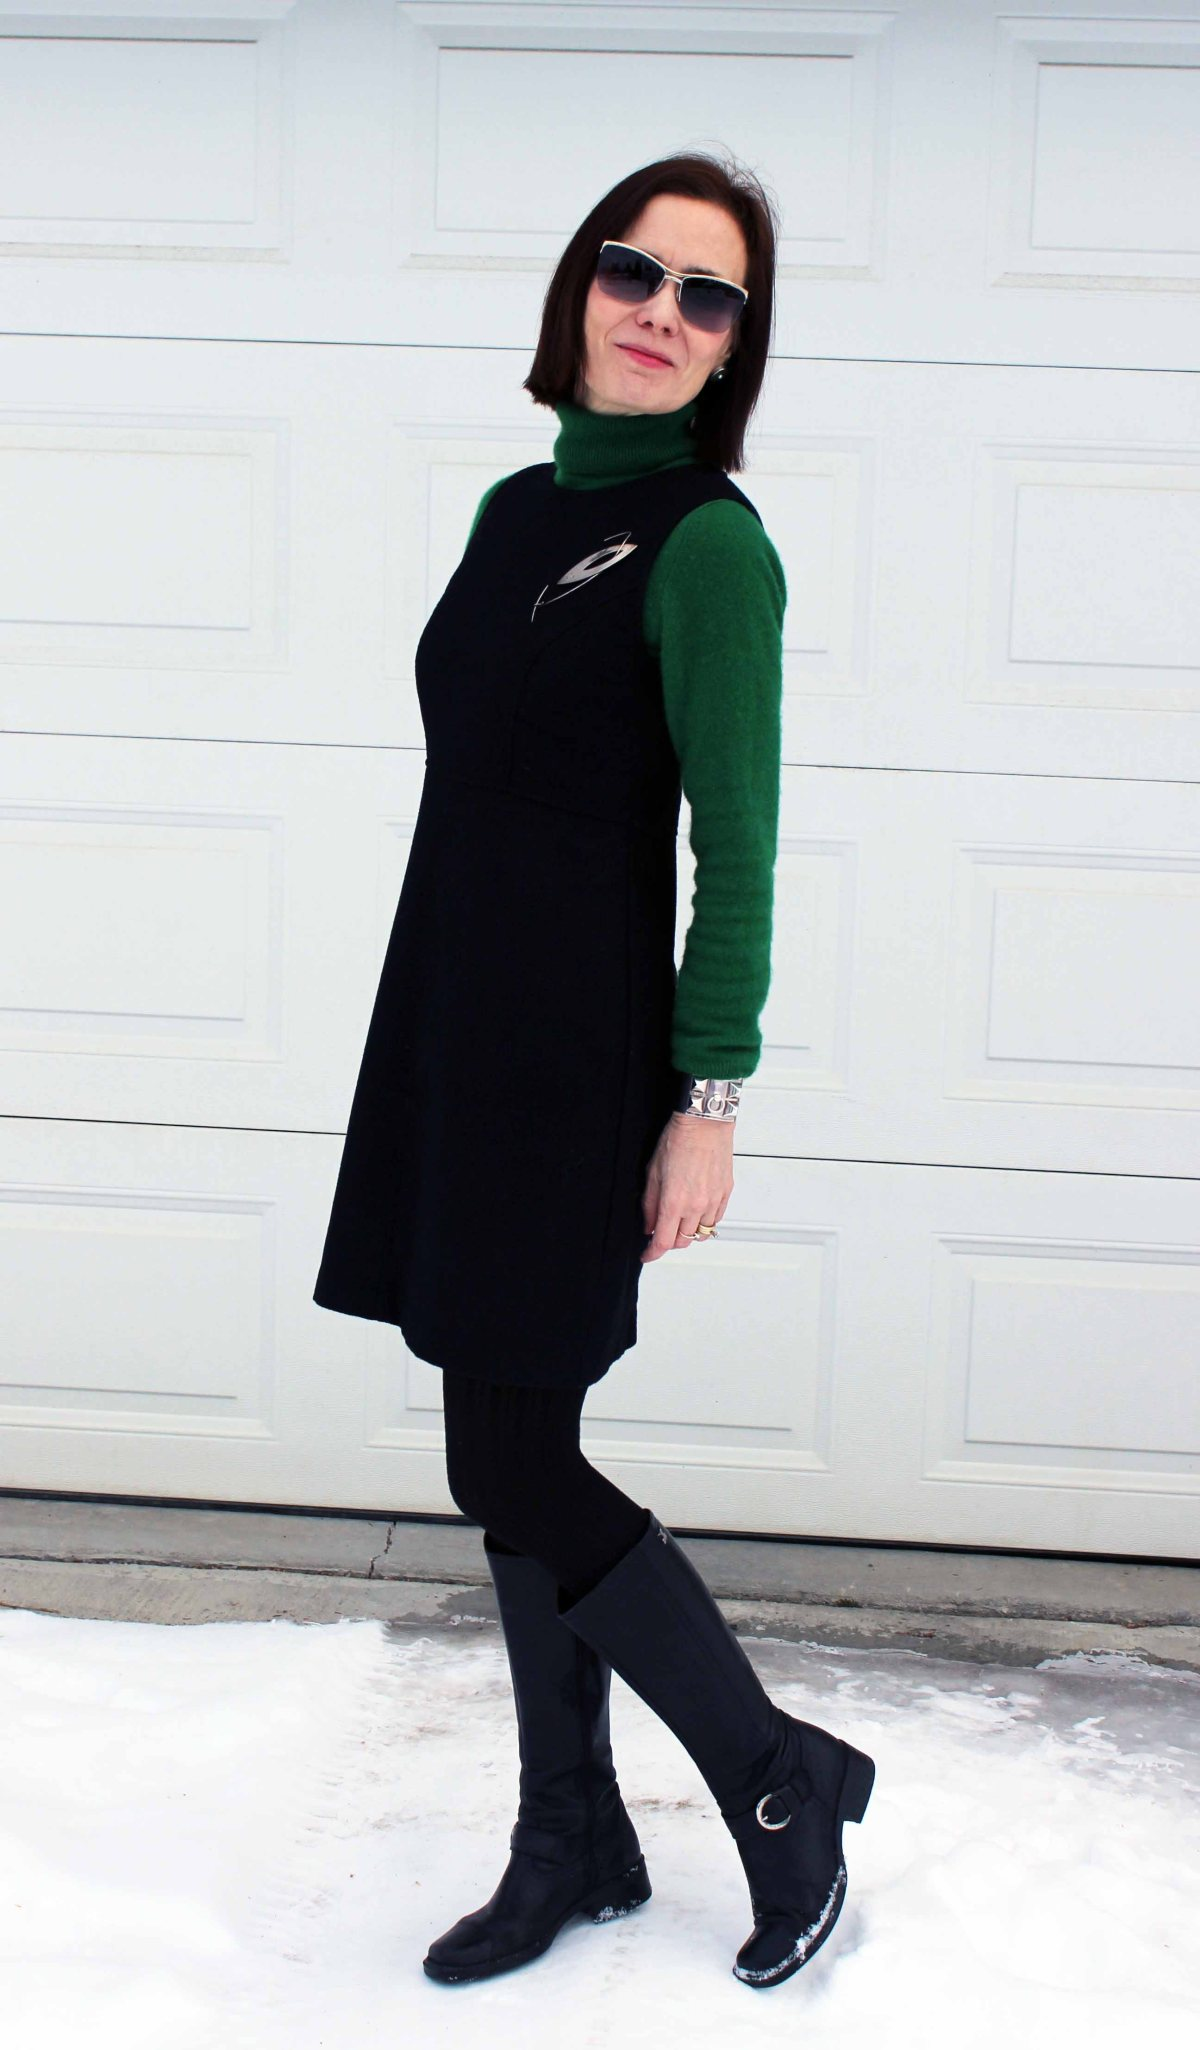 black sheath dress for March 17